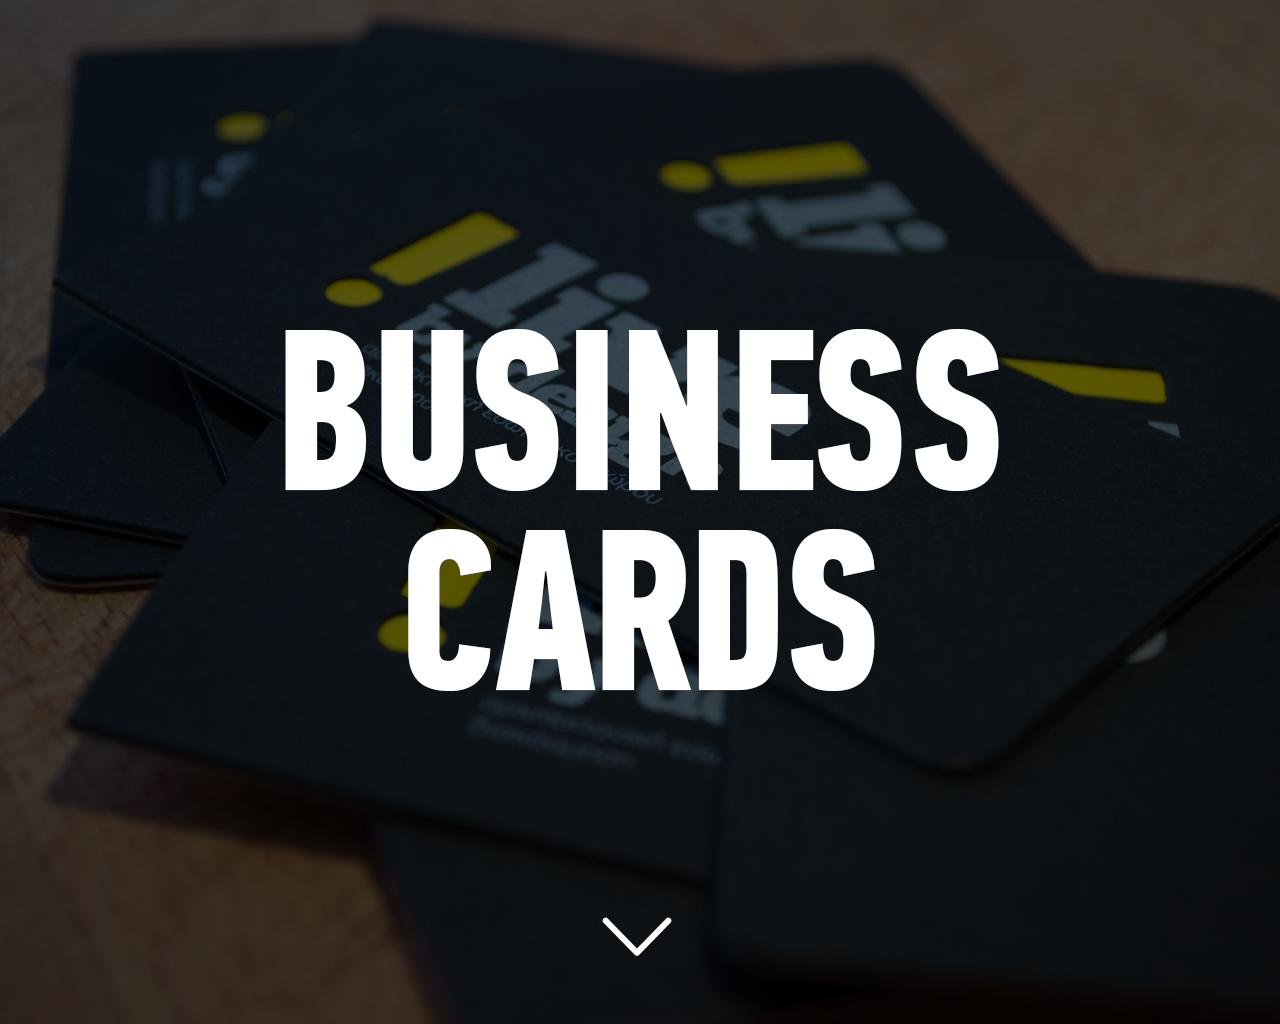 Professional Business Cards by sakisnbc - 101333